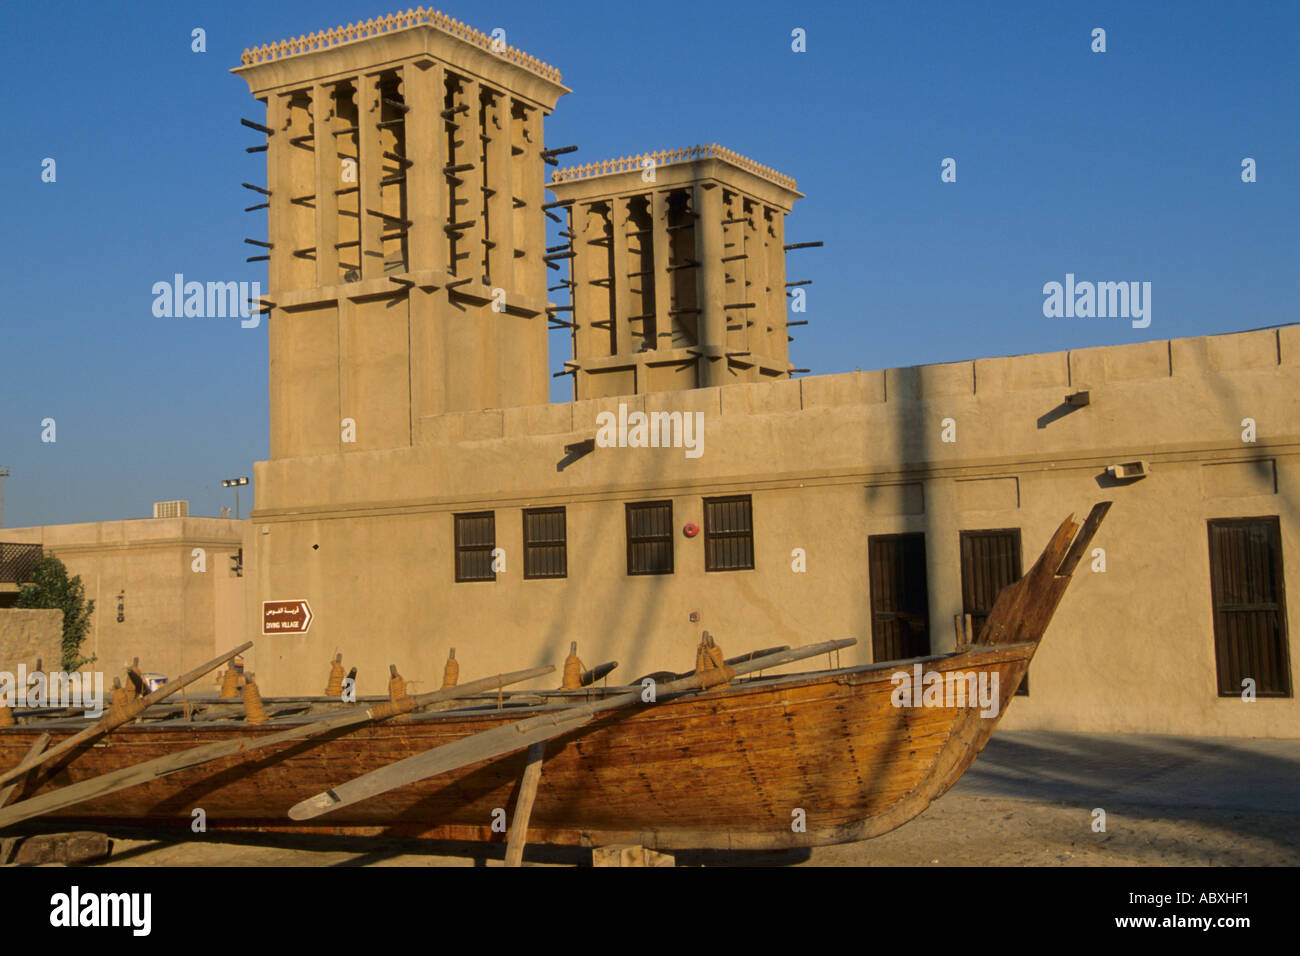 Uae dubai traditional architecture stock photo royalty for Home of architecture uae